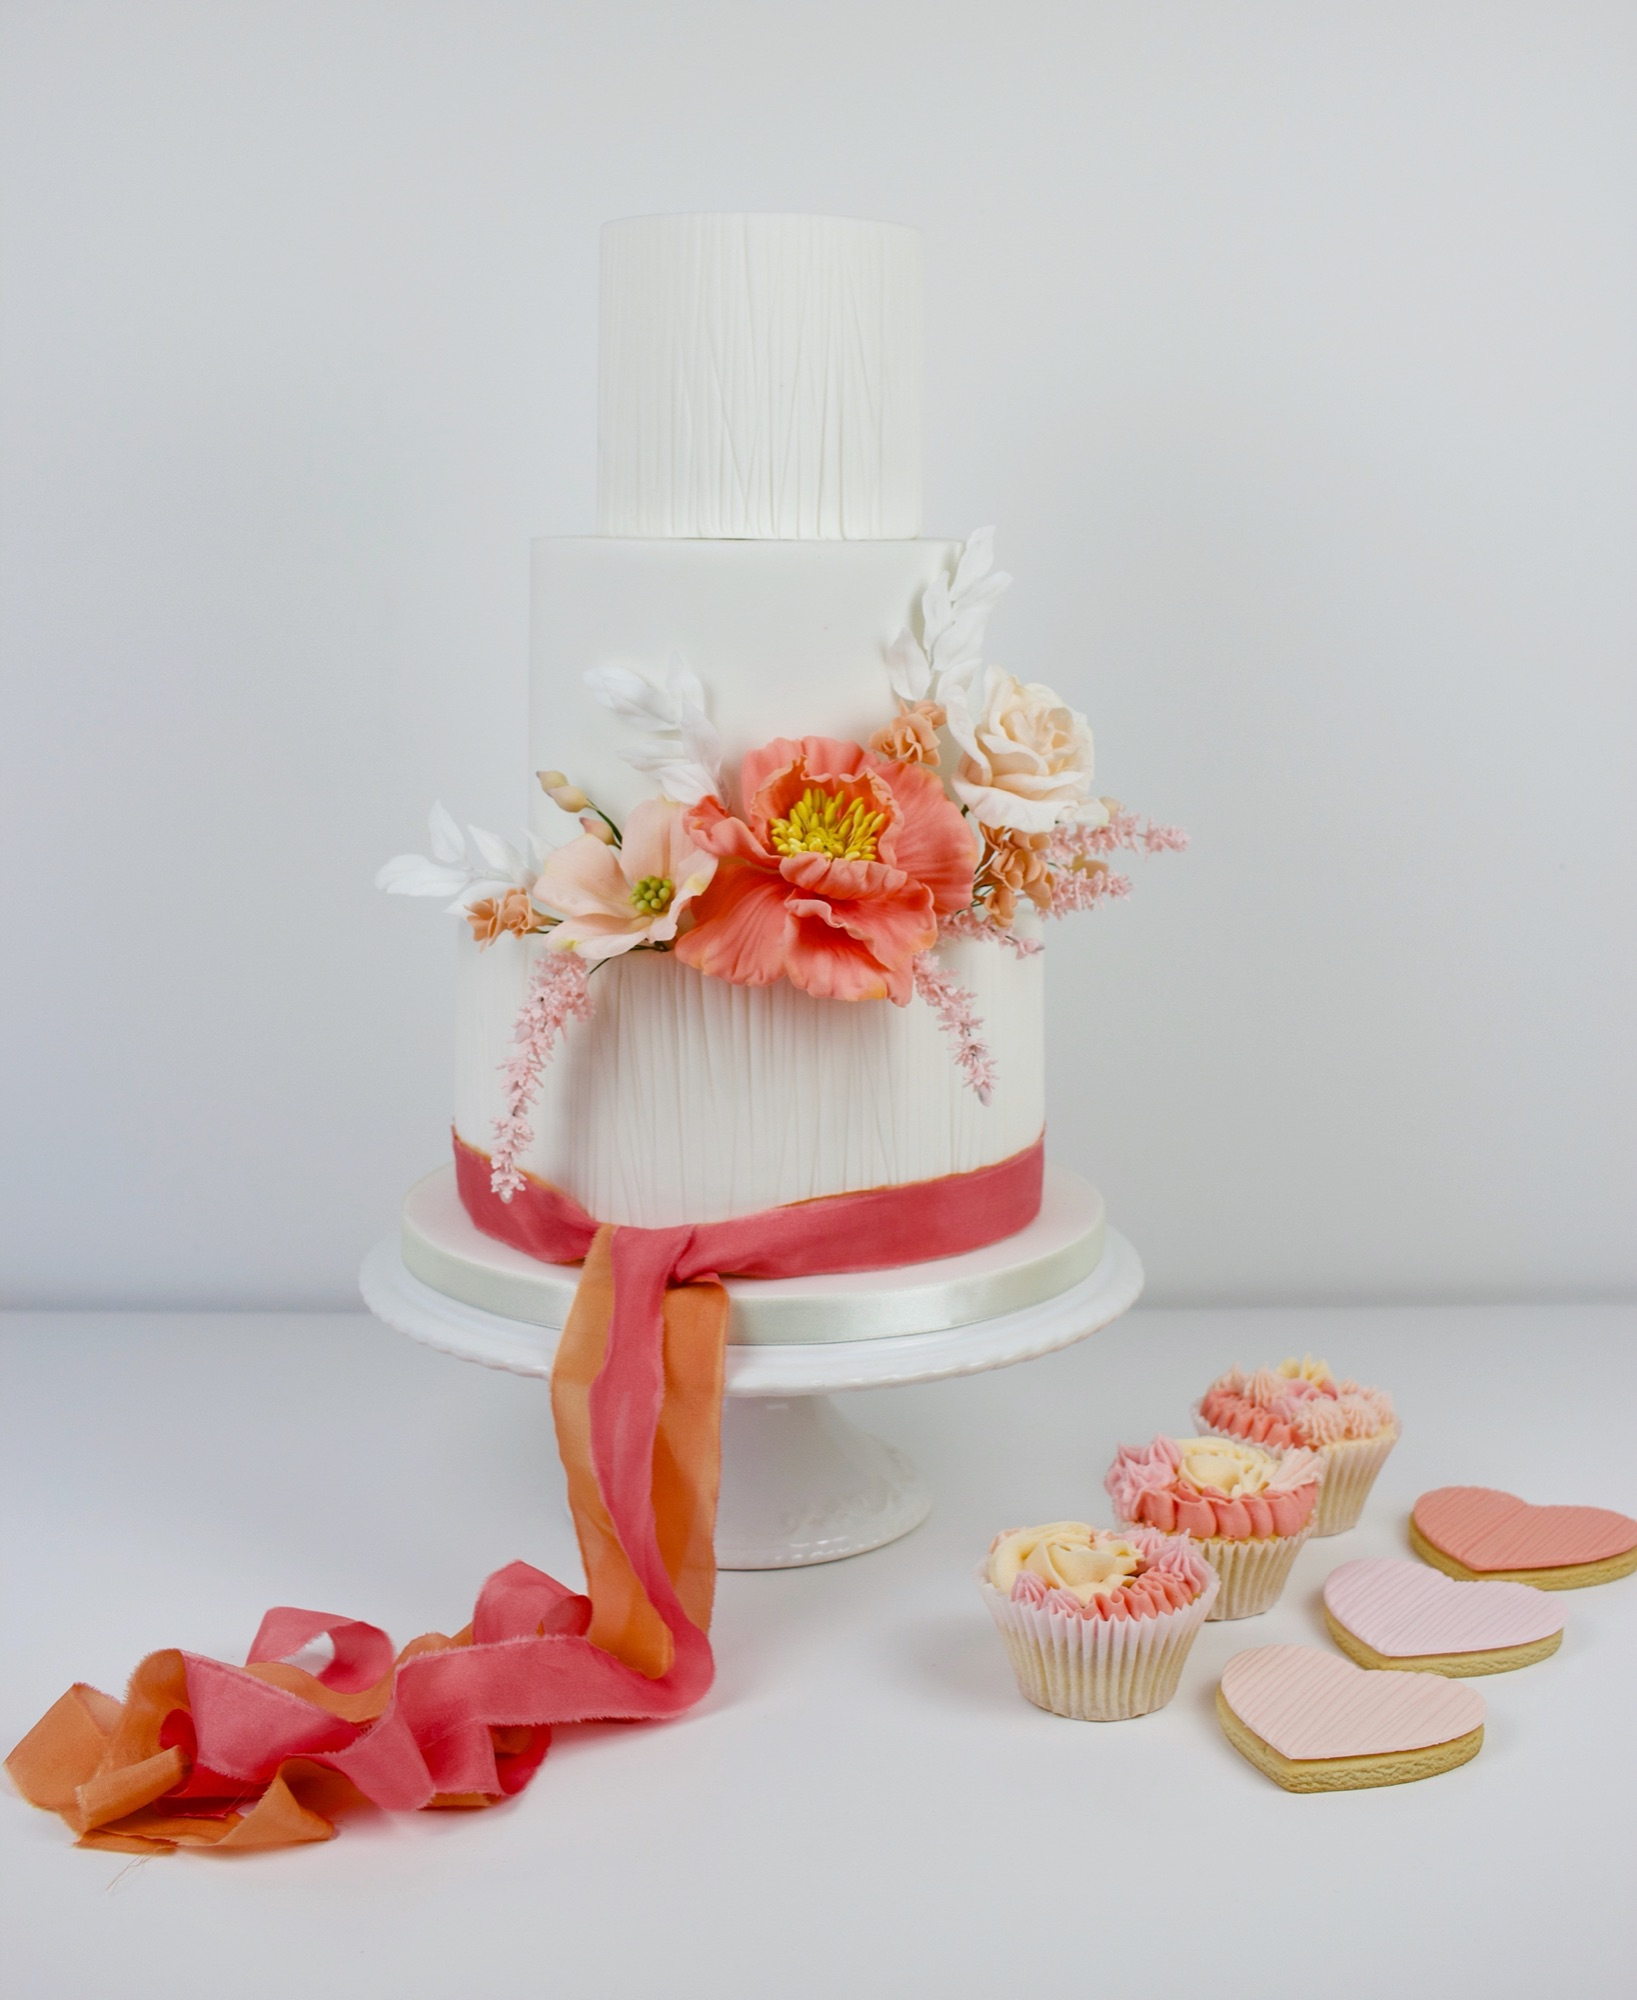 Testured wedding cake, with coral & pink flowers.